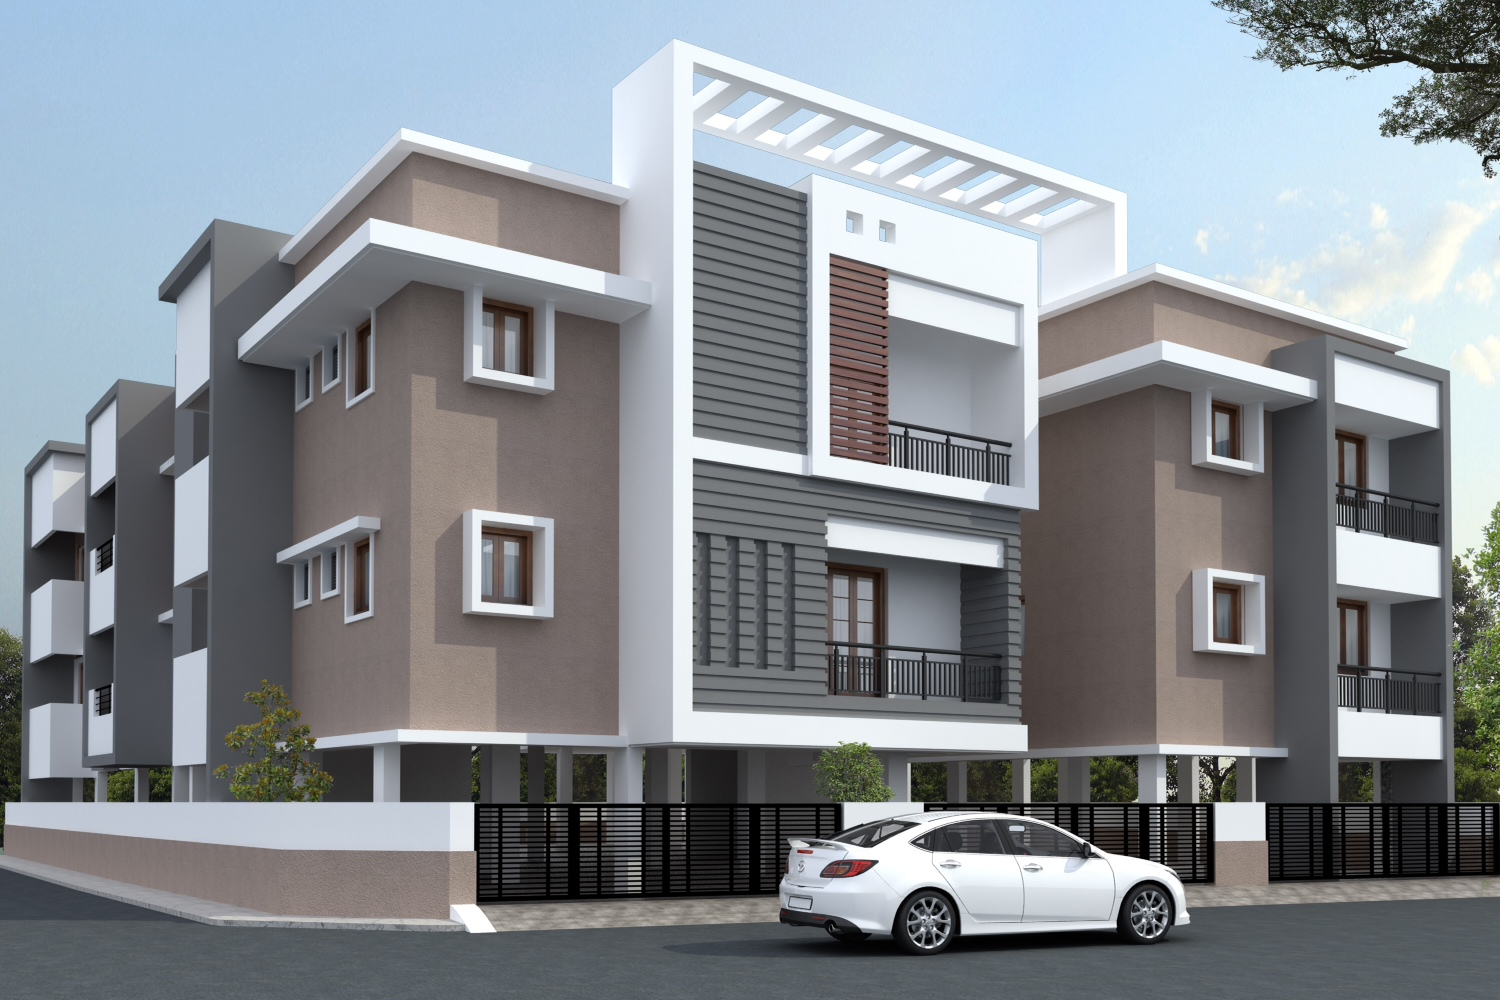 Front Elevation Designs Of Apartments : Elevation view apartment design bungalow